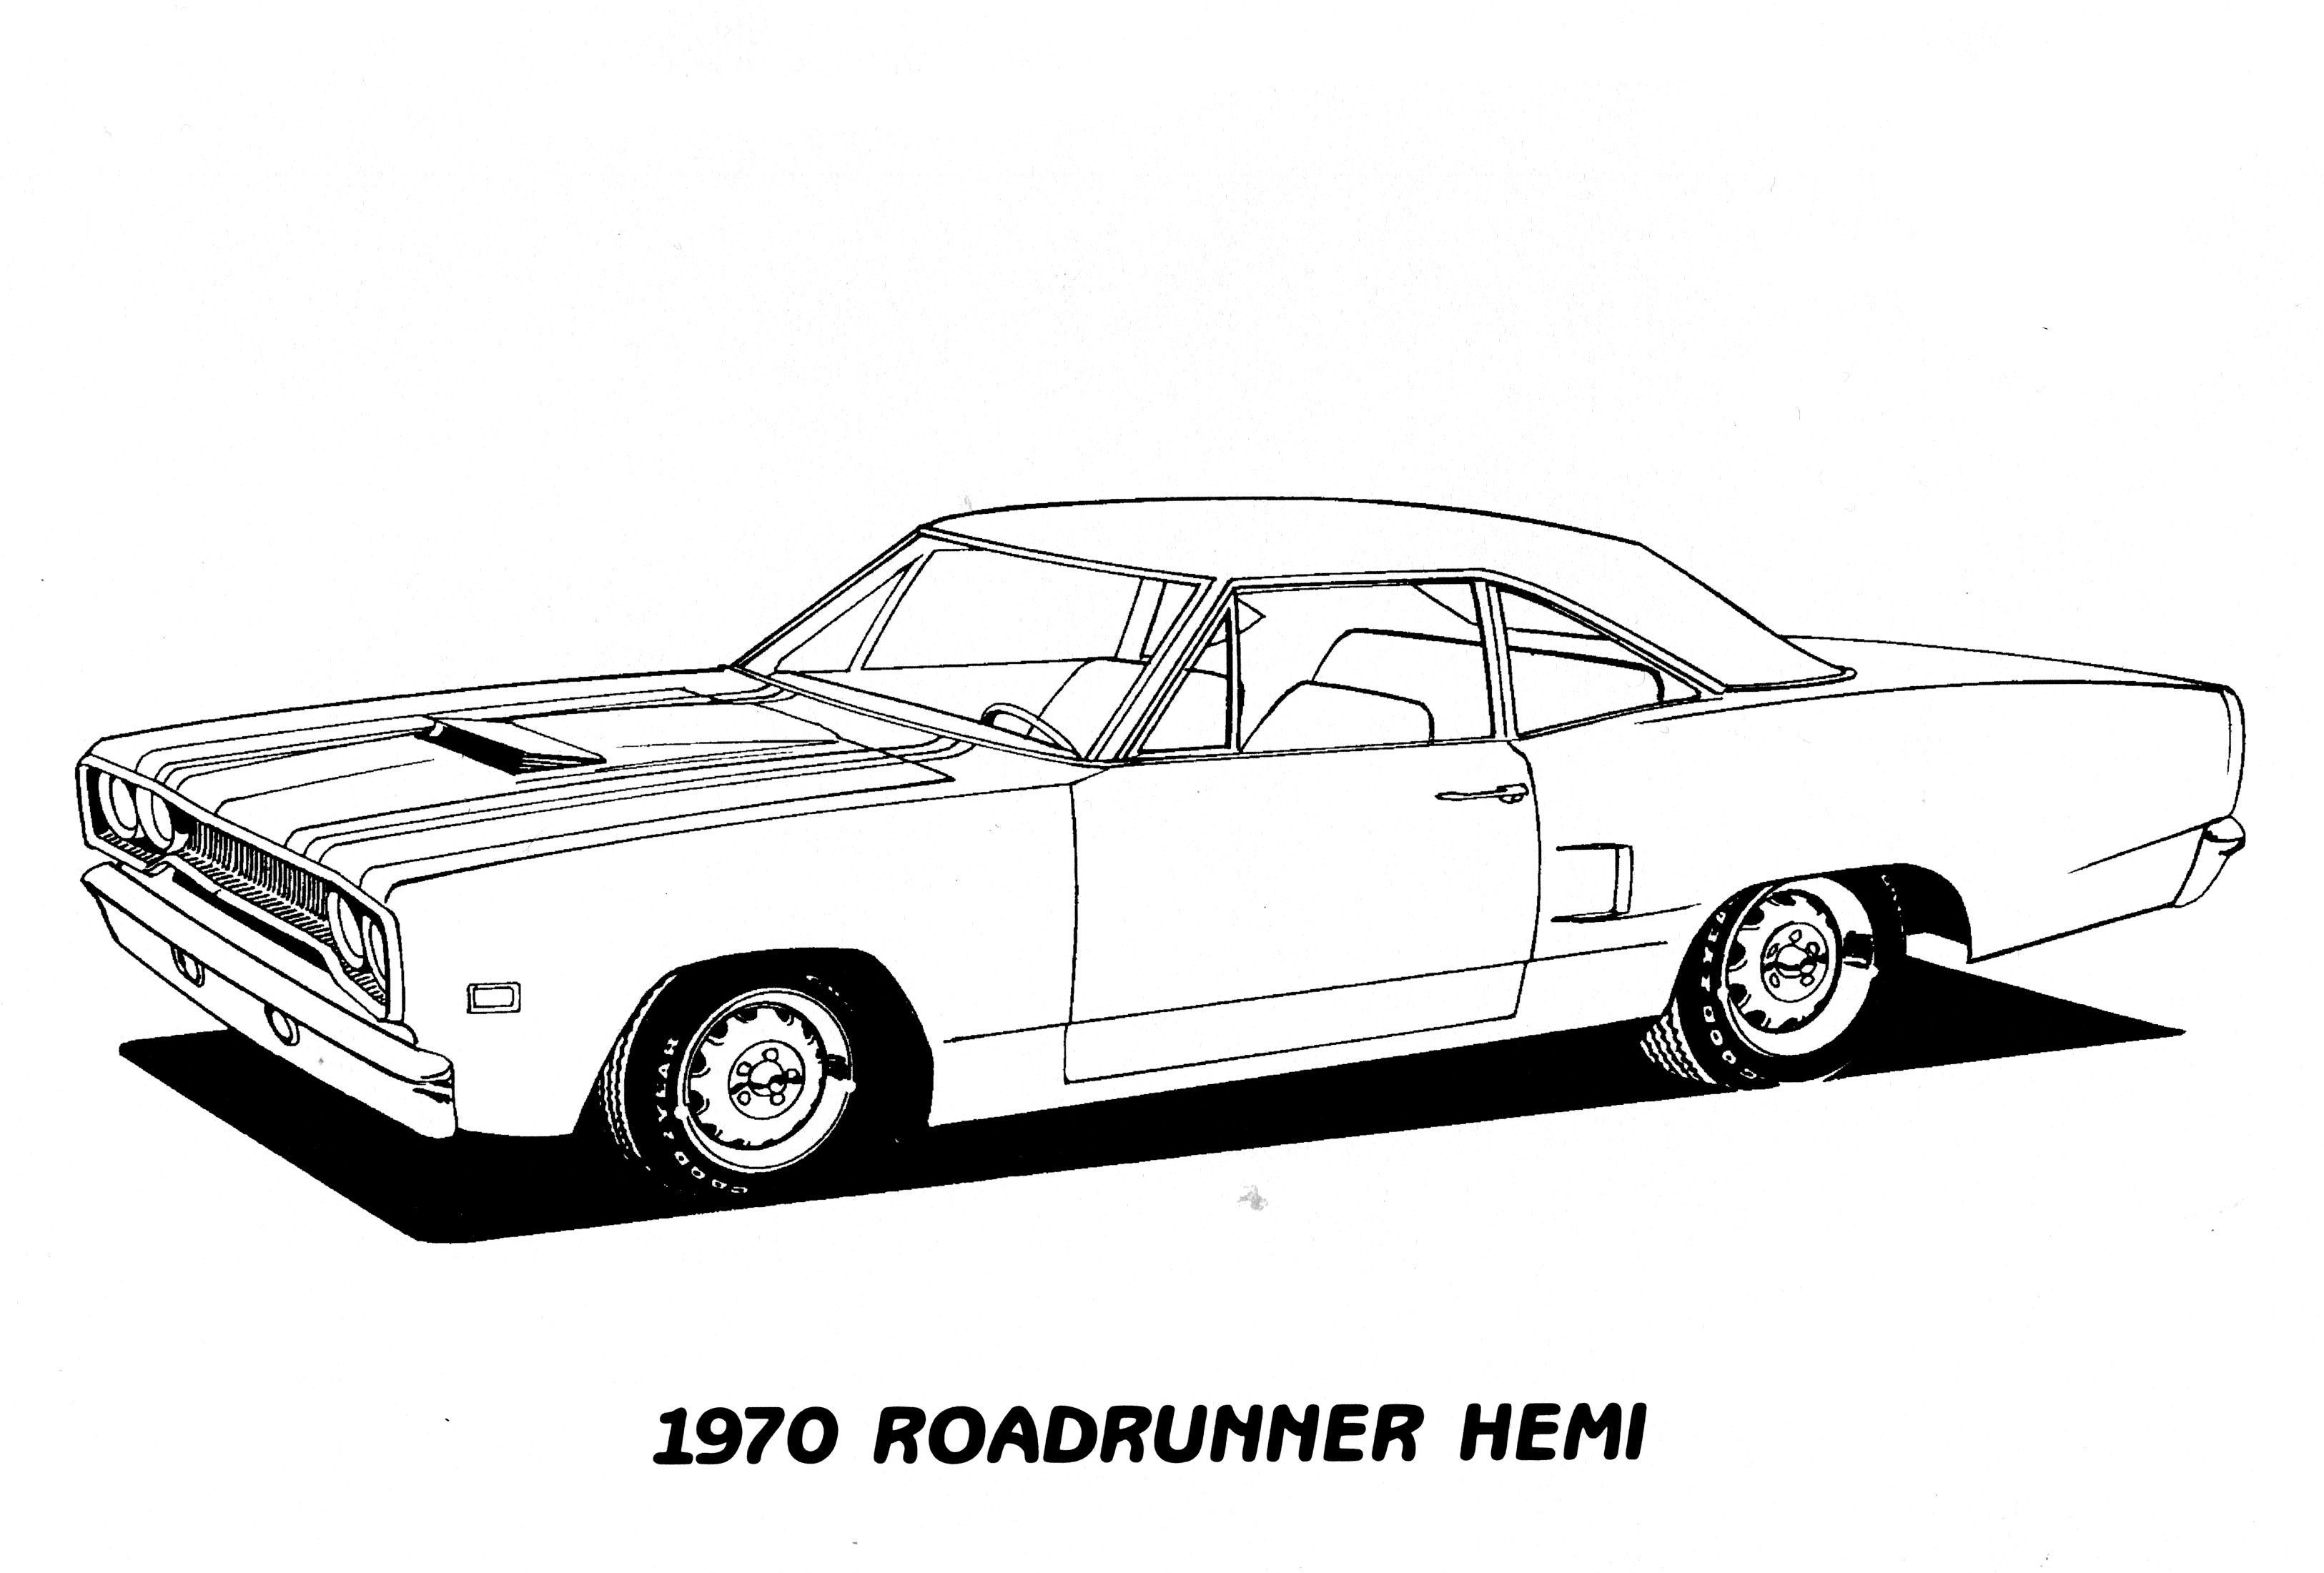 Roadrunner Hemi Cars | jacks board | Pinterest